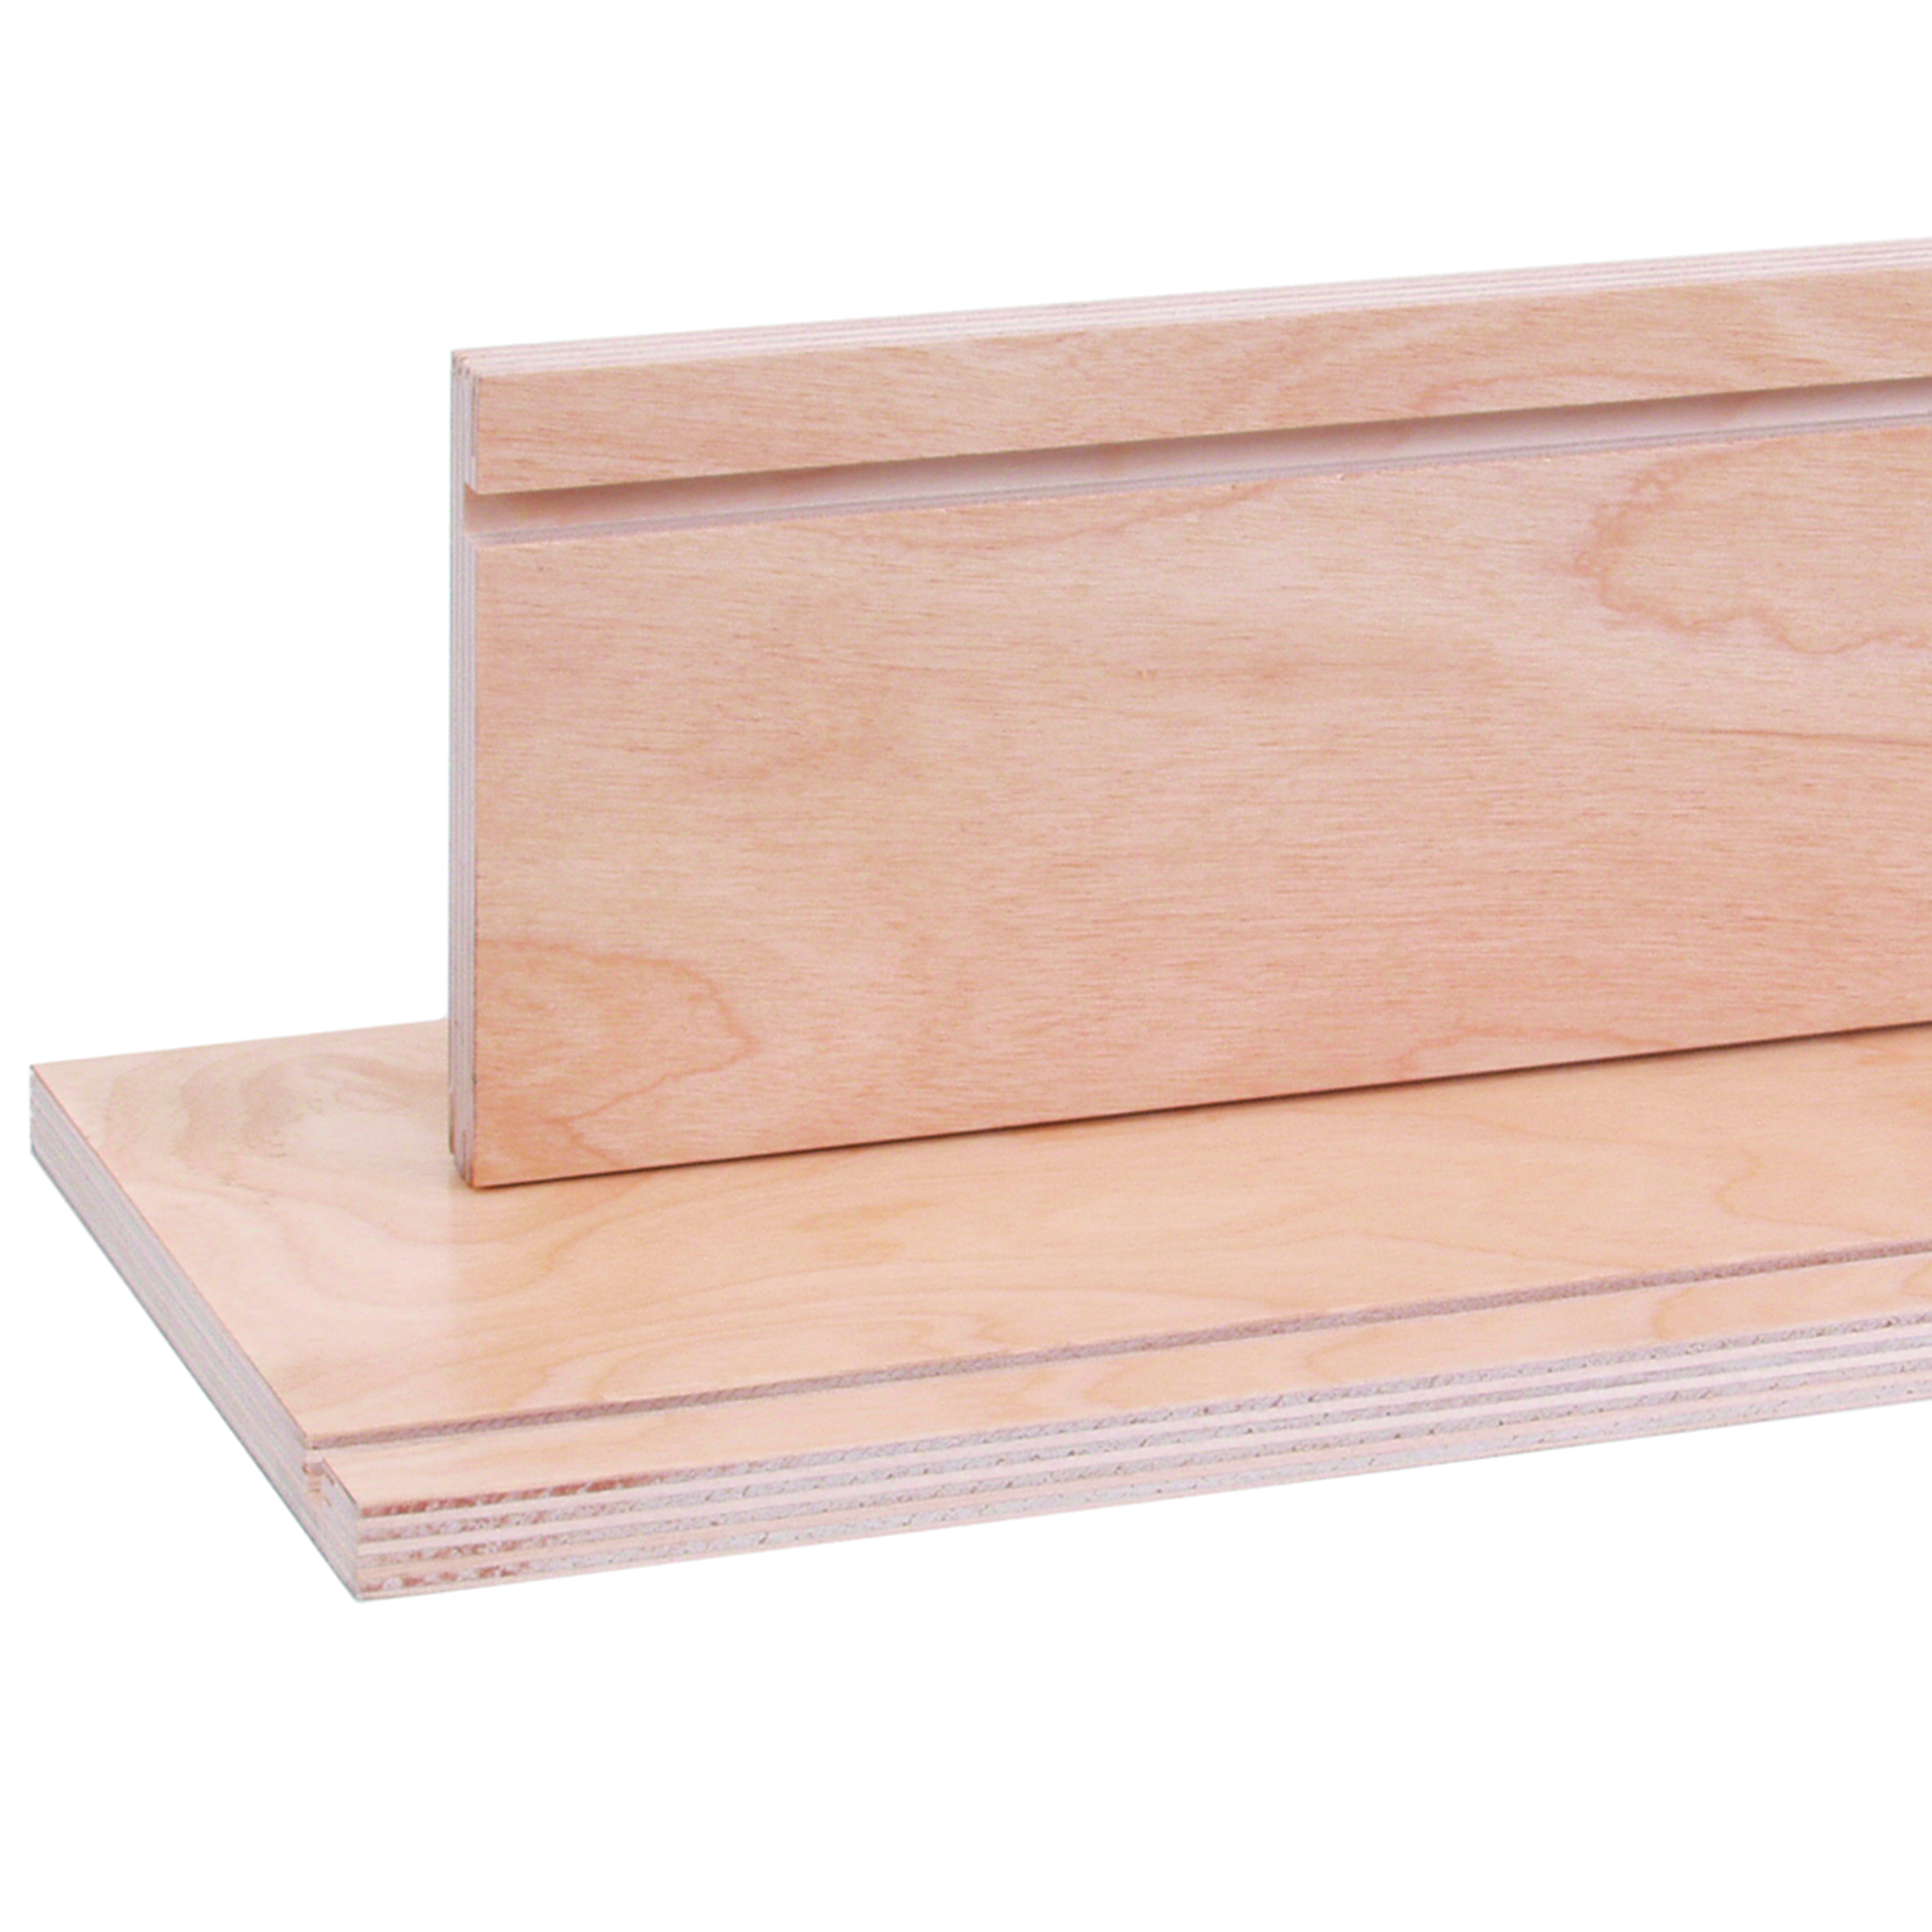 Ready-To-Use Drawer Side, 6